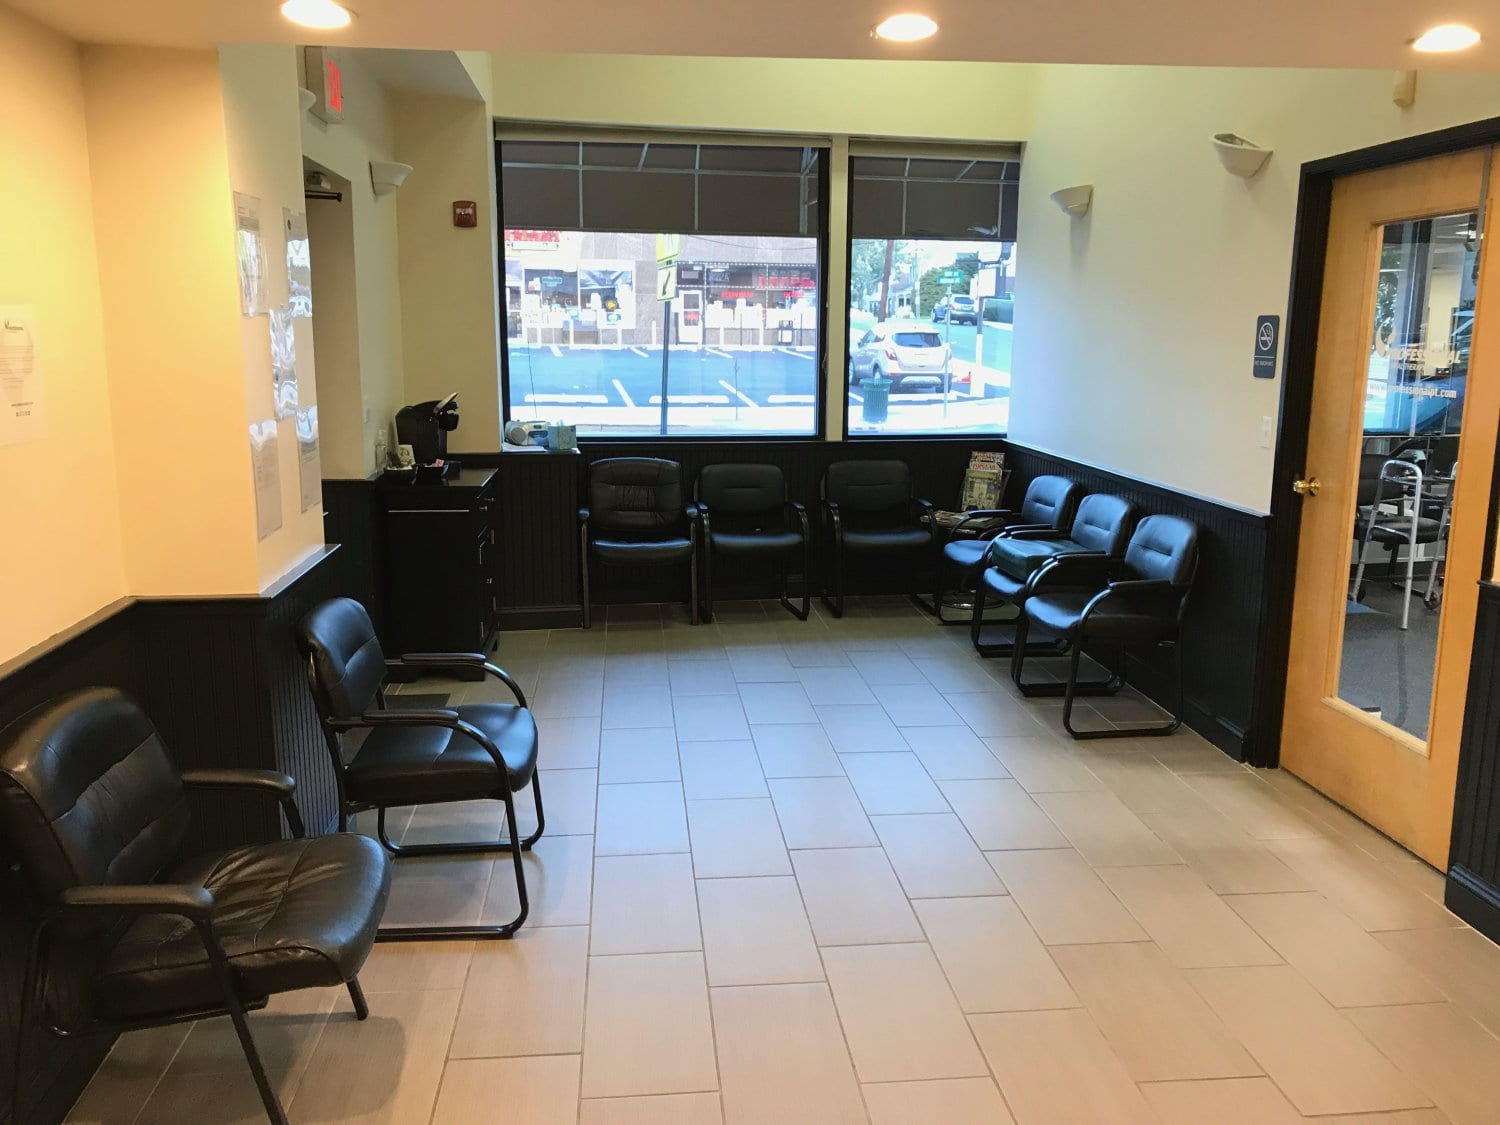 An image of the patient waiting area at our physical therapy clinic in Cliffside Park, New Jersey.